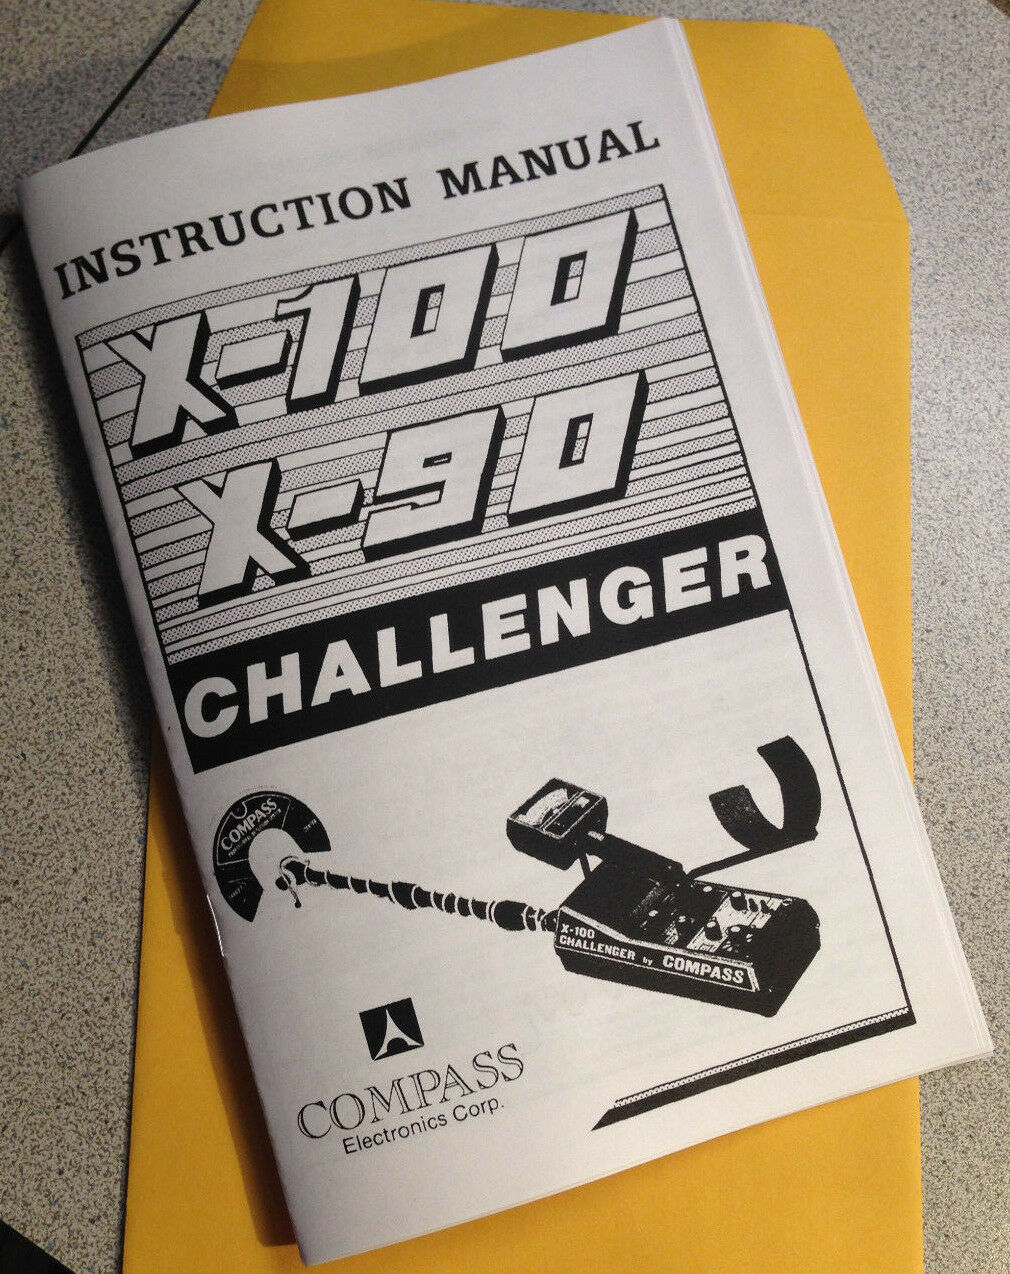 Compass Metal Detector Instruction Manual X-100, X-90 Challenger Find Treasure